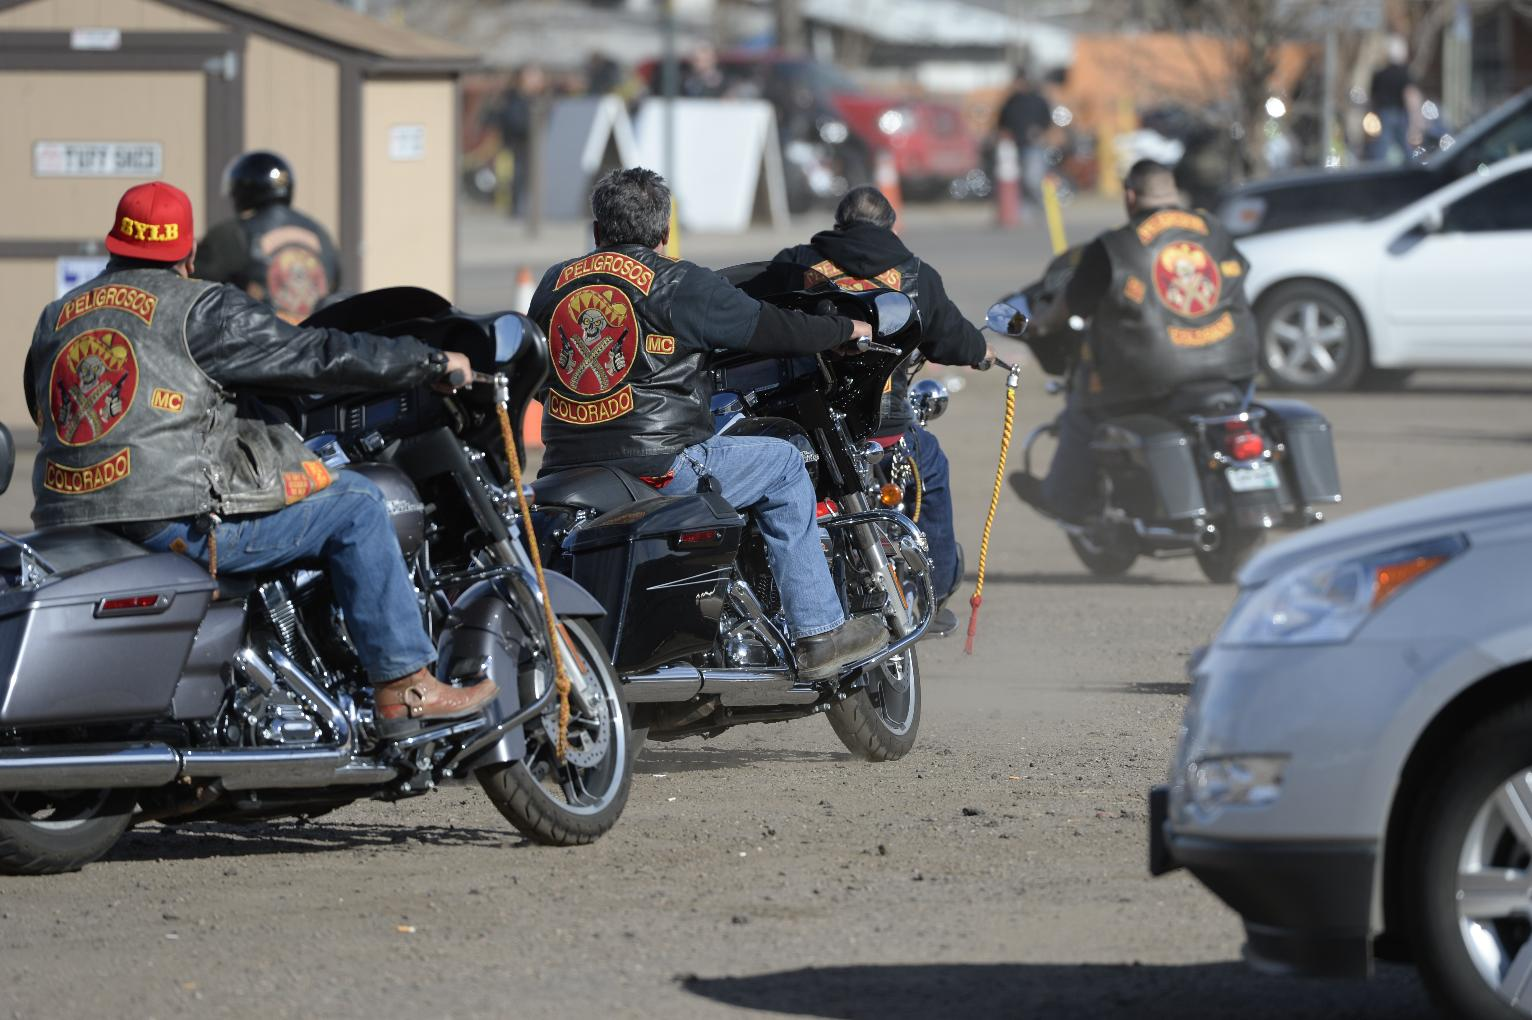 Fast Growing Motorcycle Group Is Largely For Law